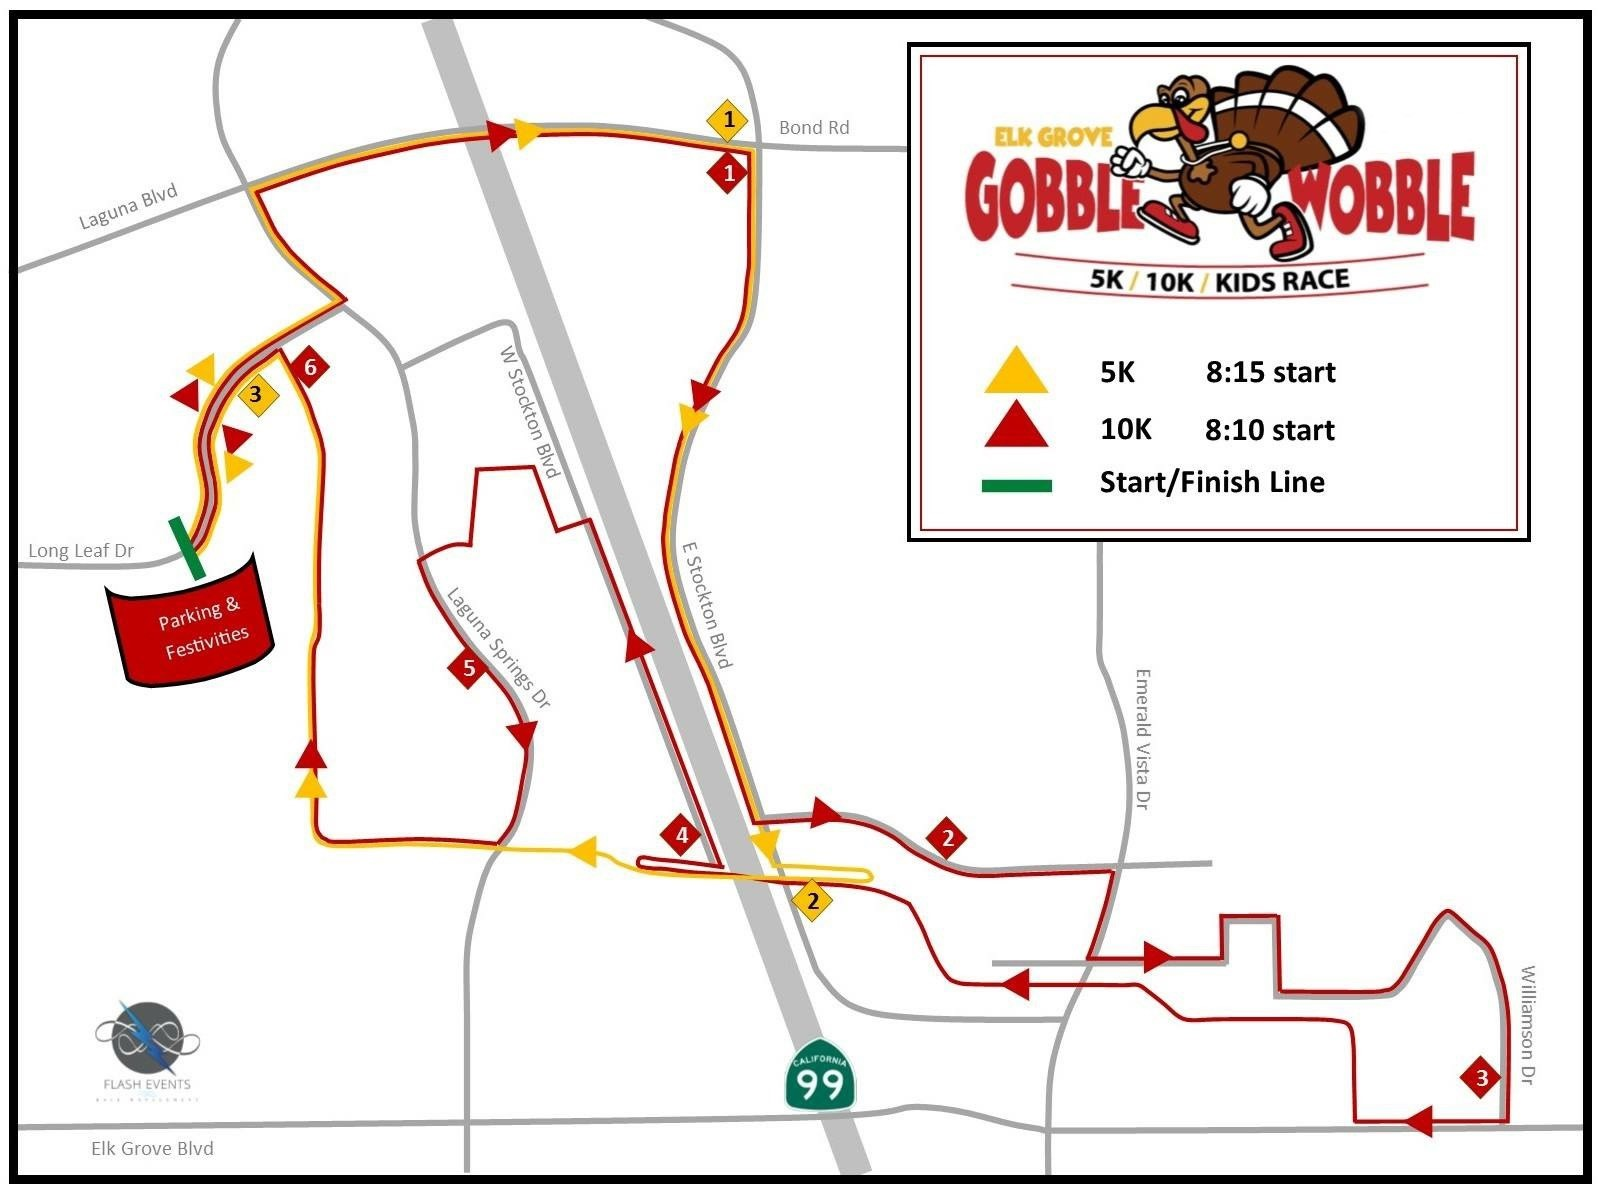 Elk Grove Gobble Wobble 2019 in Elk Grove, CA - Details ... on drama map, miller map, gray map, white map, brown map, martin map, gorge map,